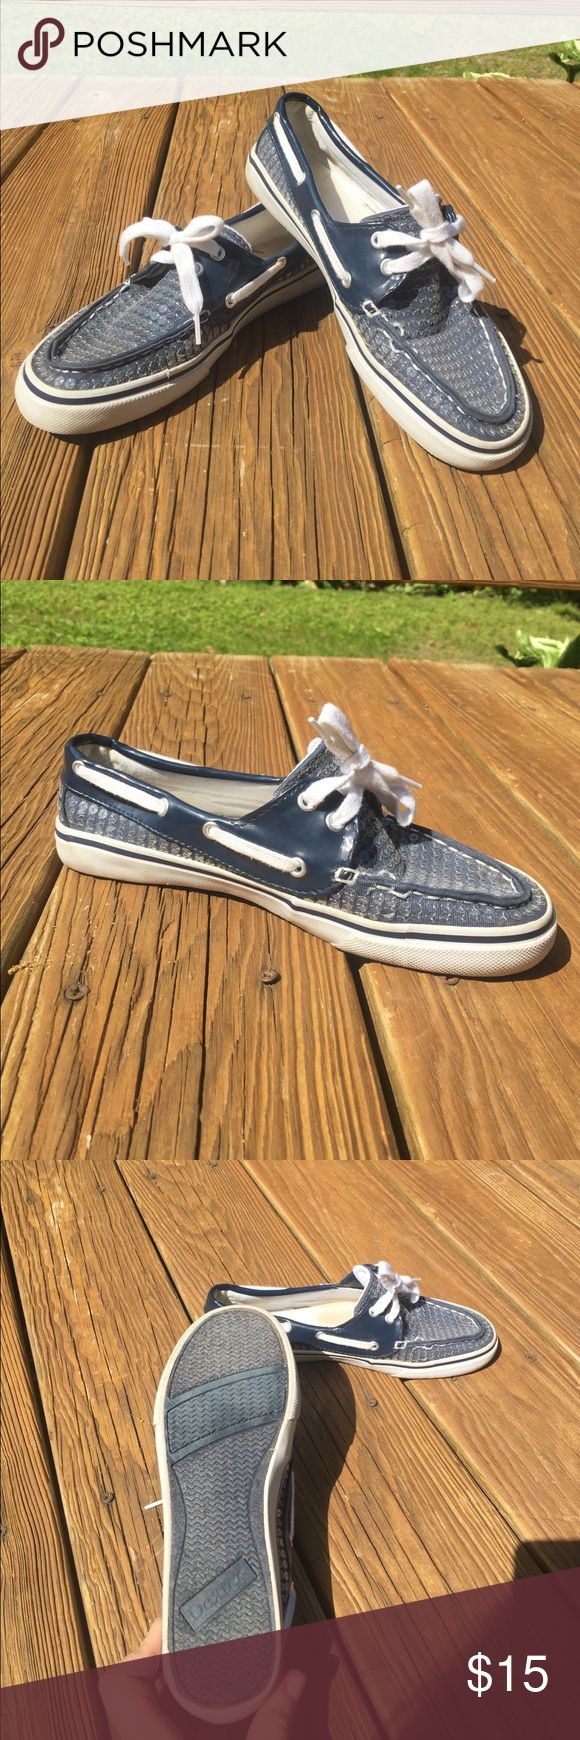 Navy Blue Boat Shoes Navy blue and Sequin Boat Shoes, Dexter brand****** only under Sperry for exposure, so cute for the summer!!! Women's size 7 in very good condition Sperry Shoes Flats & Loafers